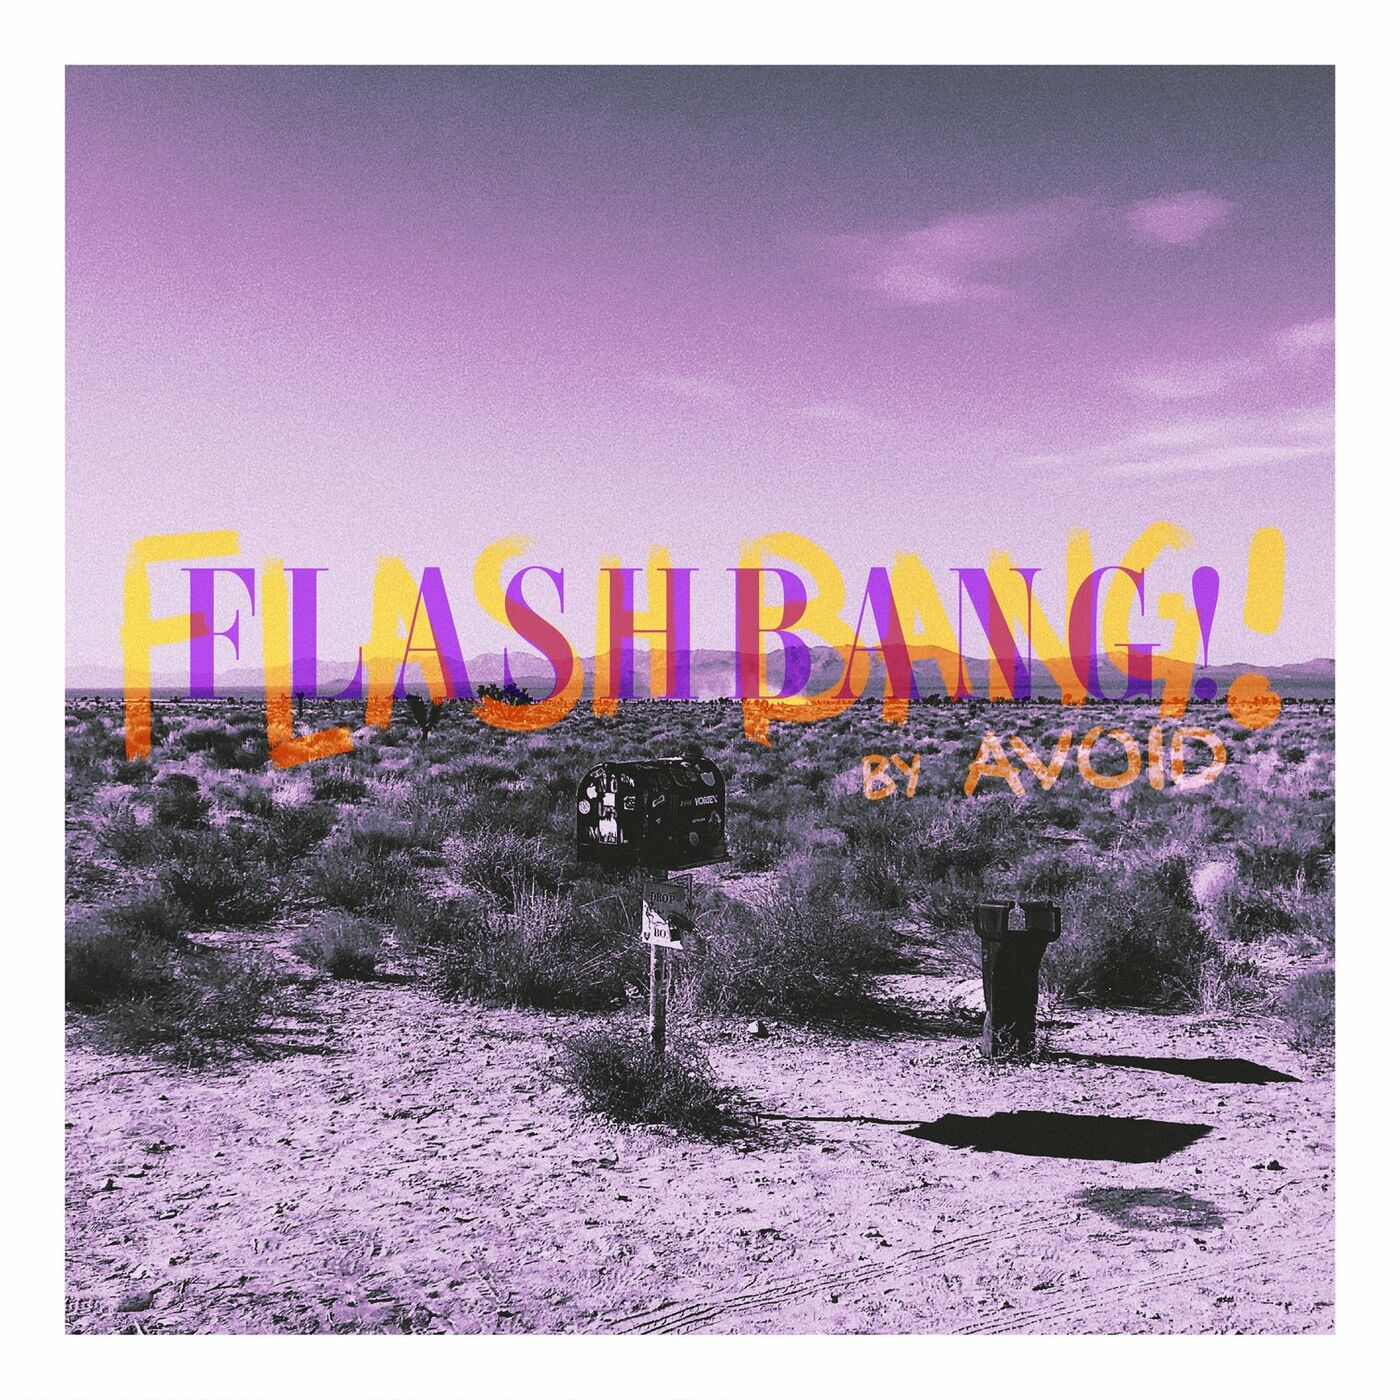 Avoid - Flashbang! [single] (2020)